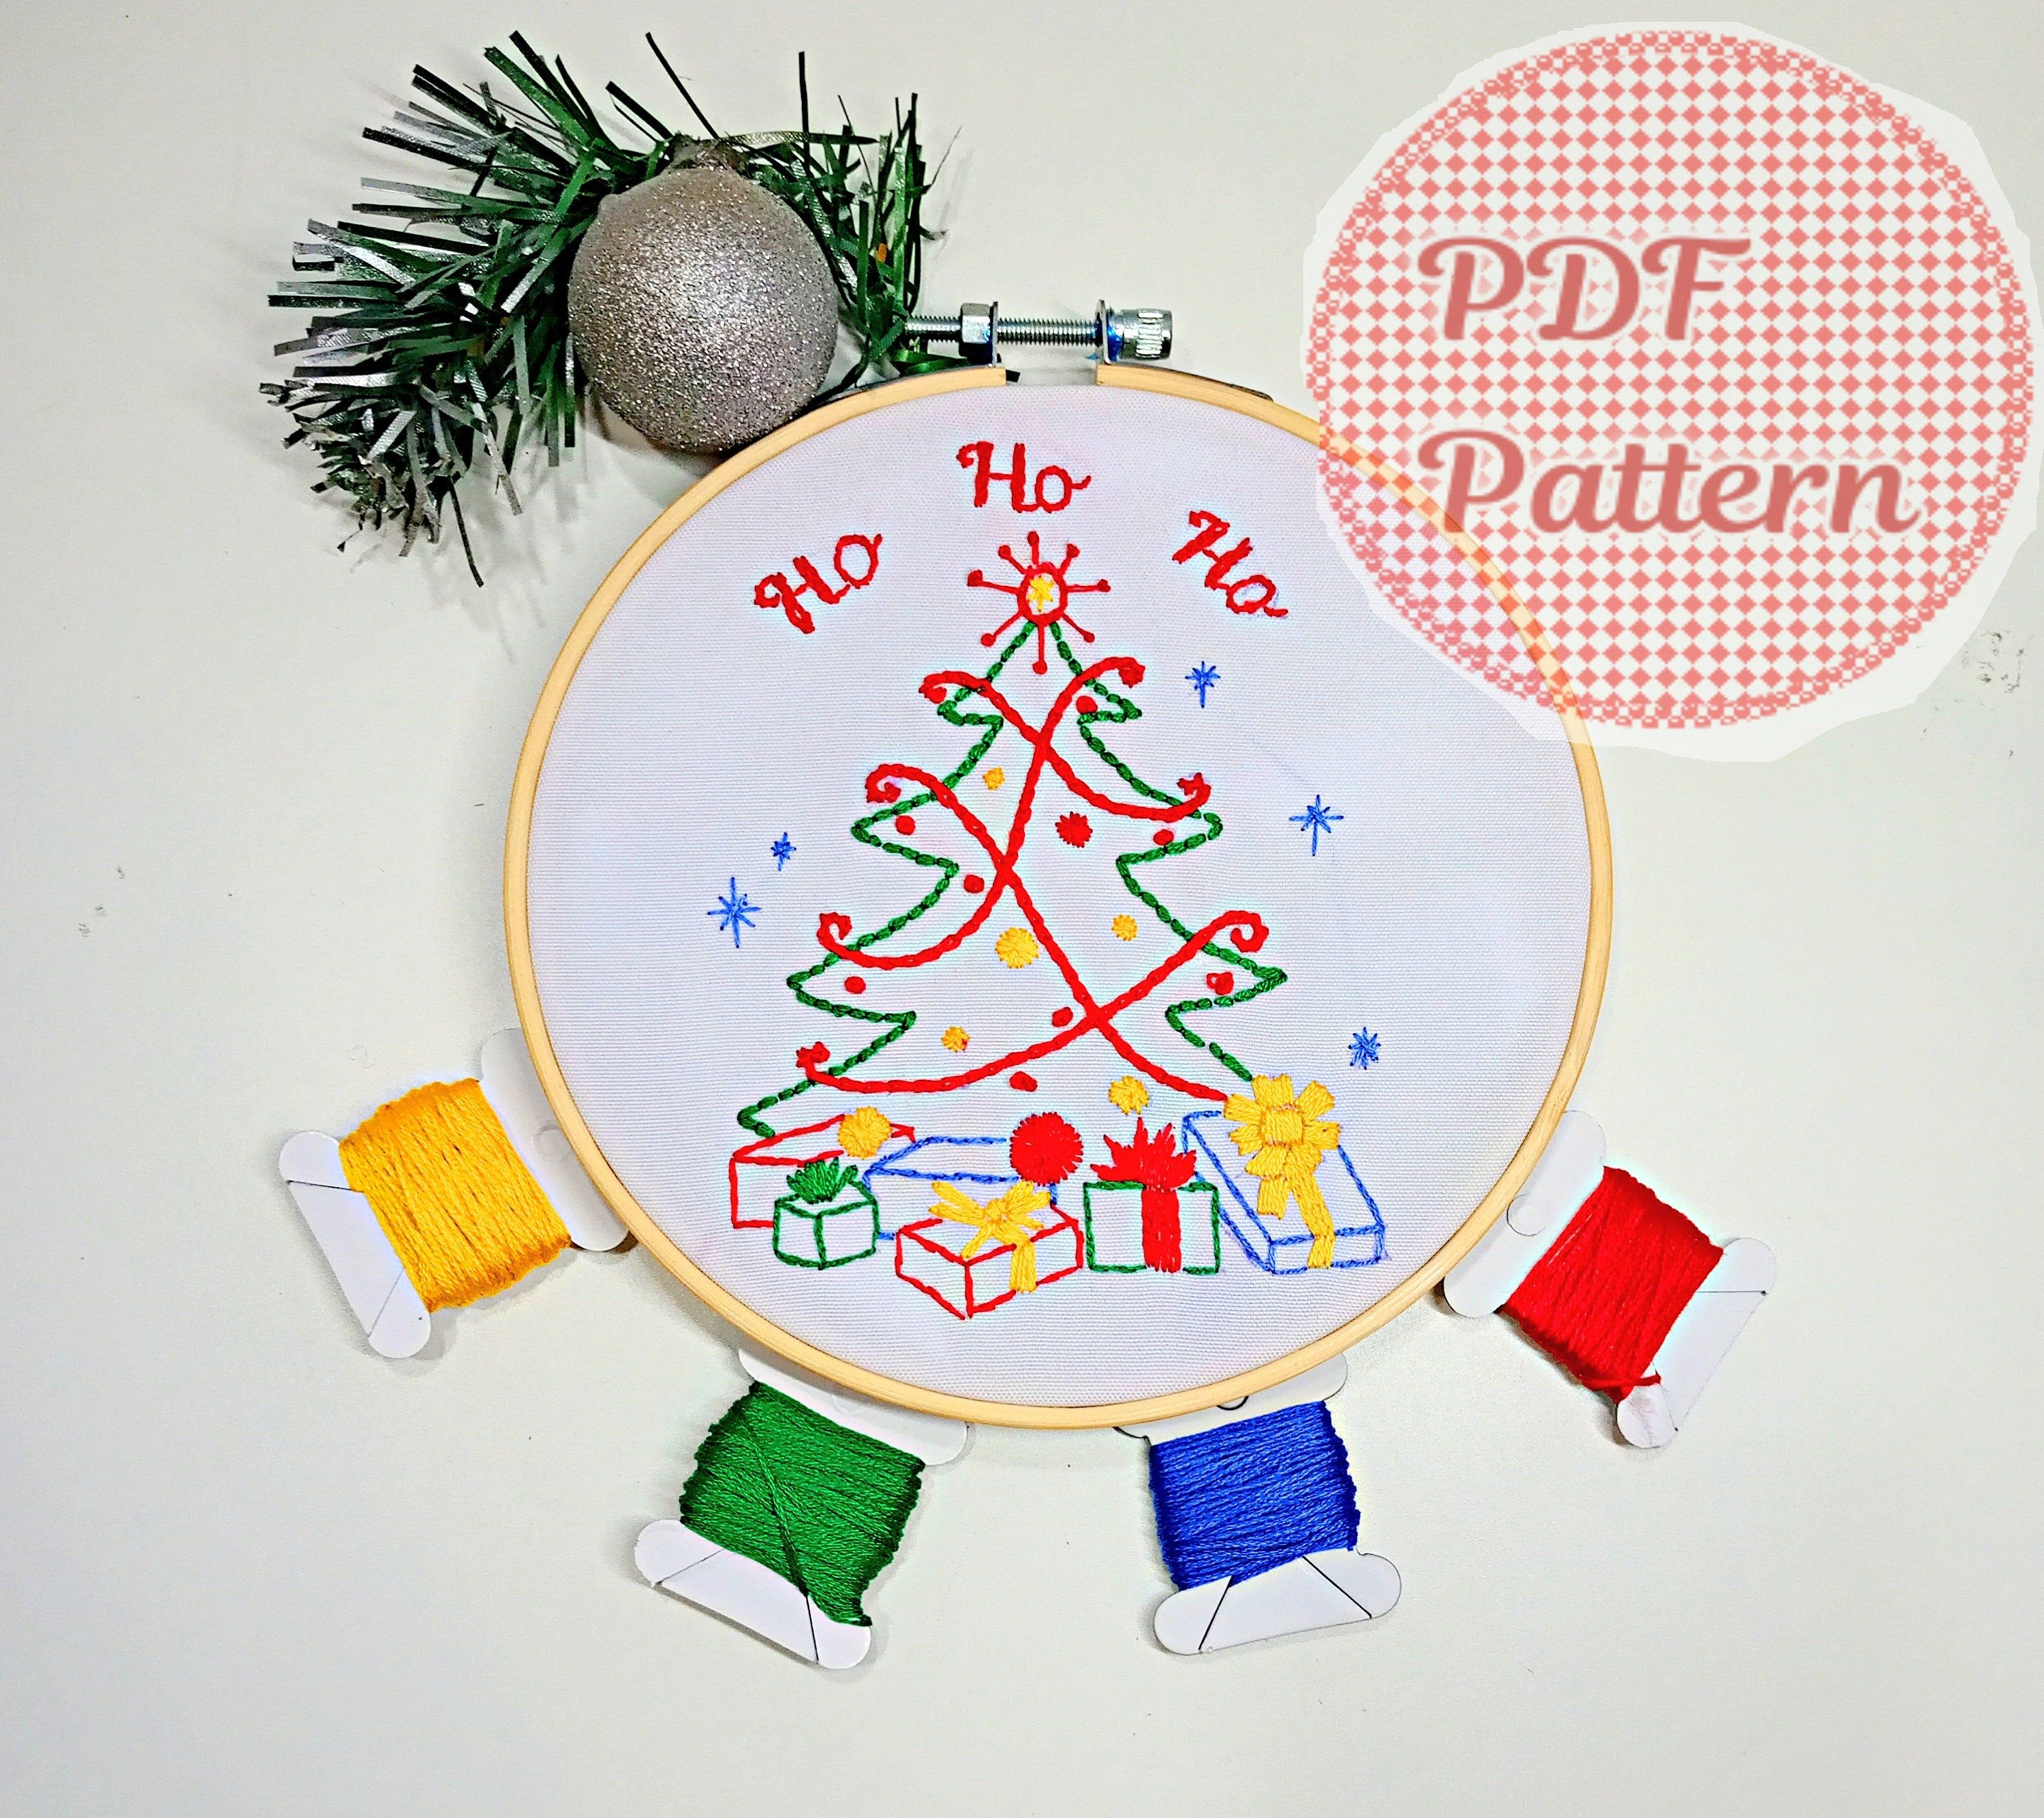 Christmas Tree Hand Embroidery Design Pattern Pdf Diy Etsy In 2020 Hand Embroidery Design Patterns Hand Embroidery Design Embroidery Designs